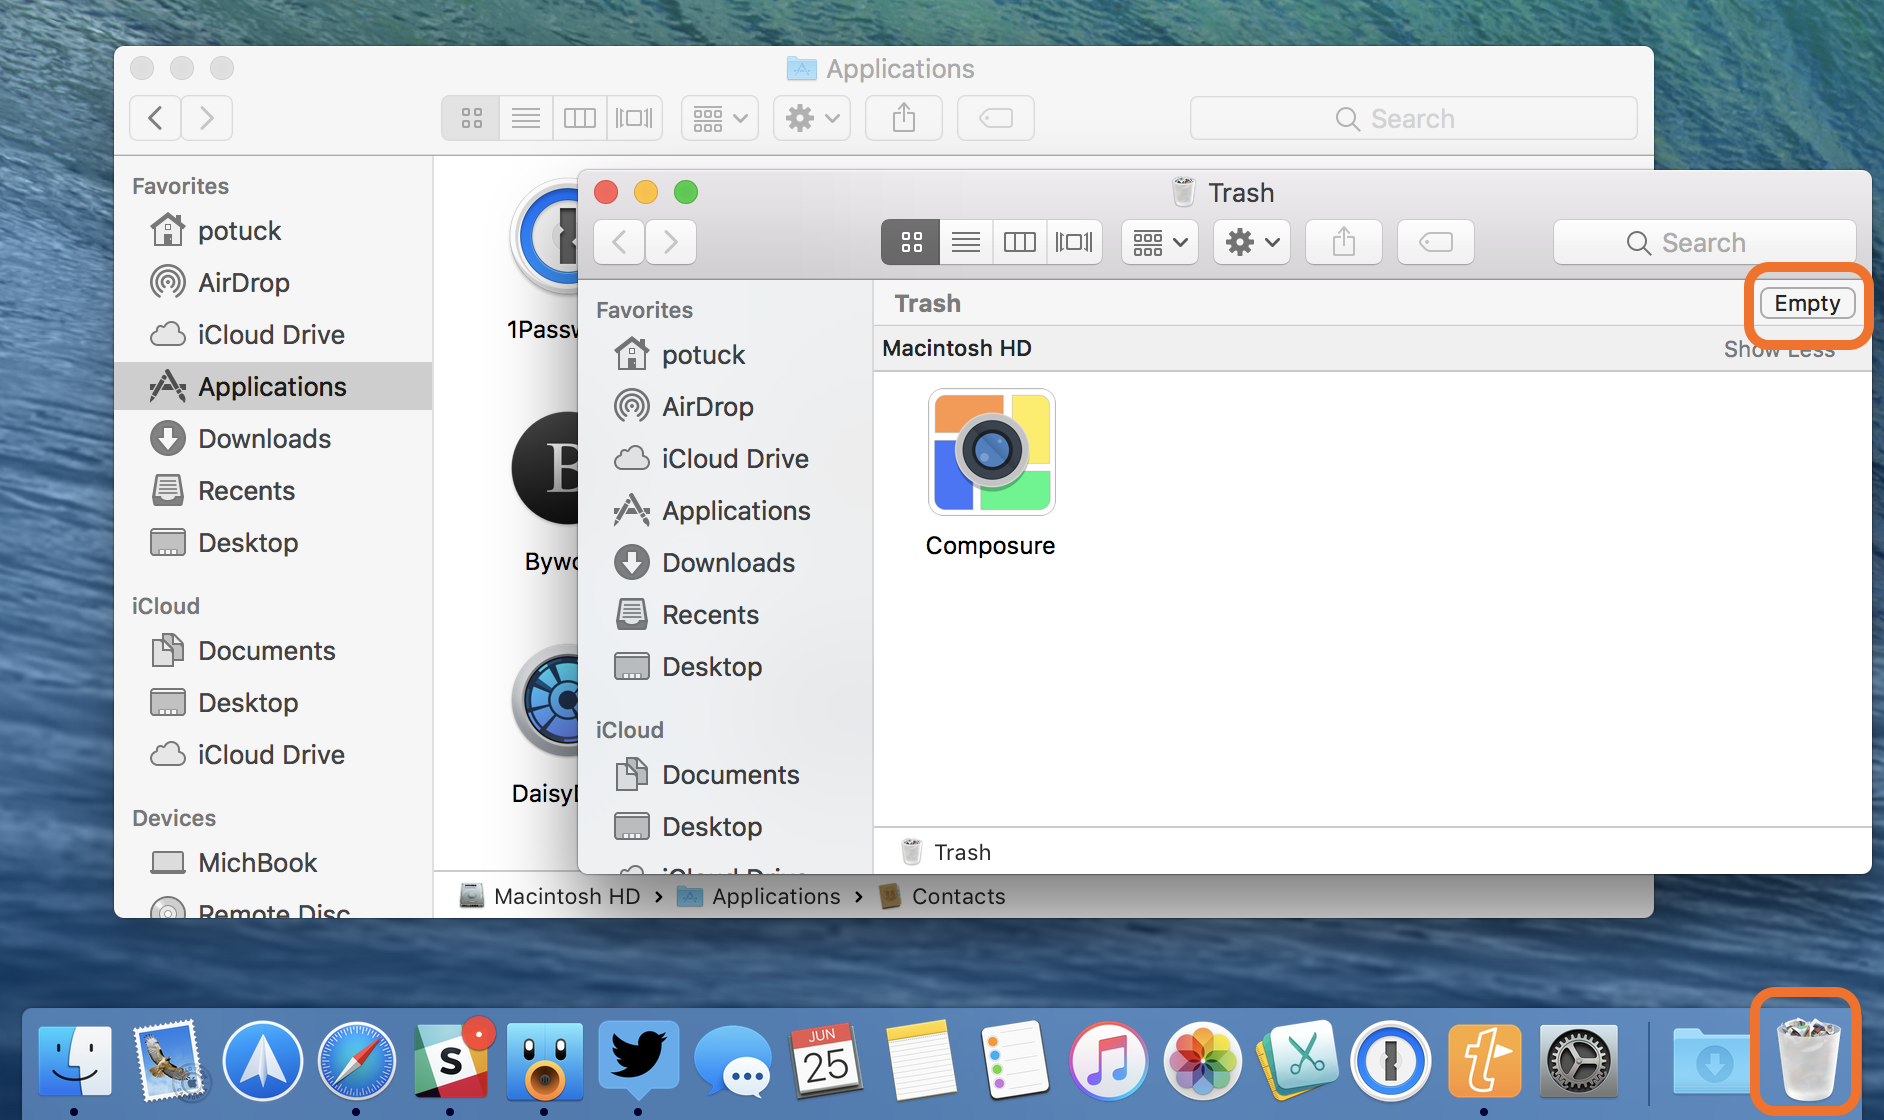 Mac: How to delete apps - 9to5Mac